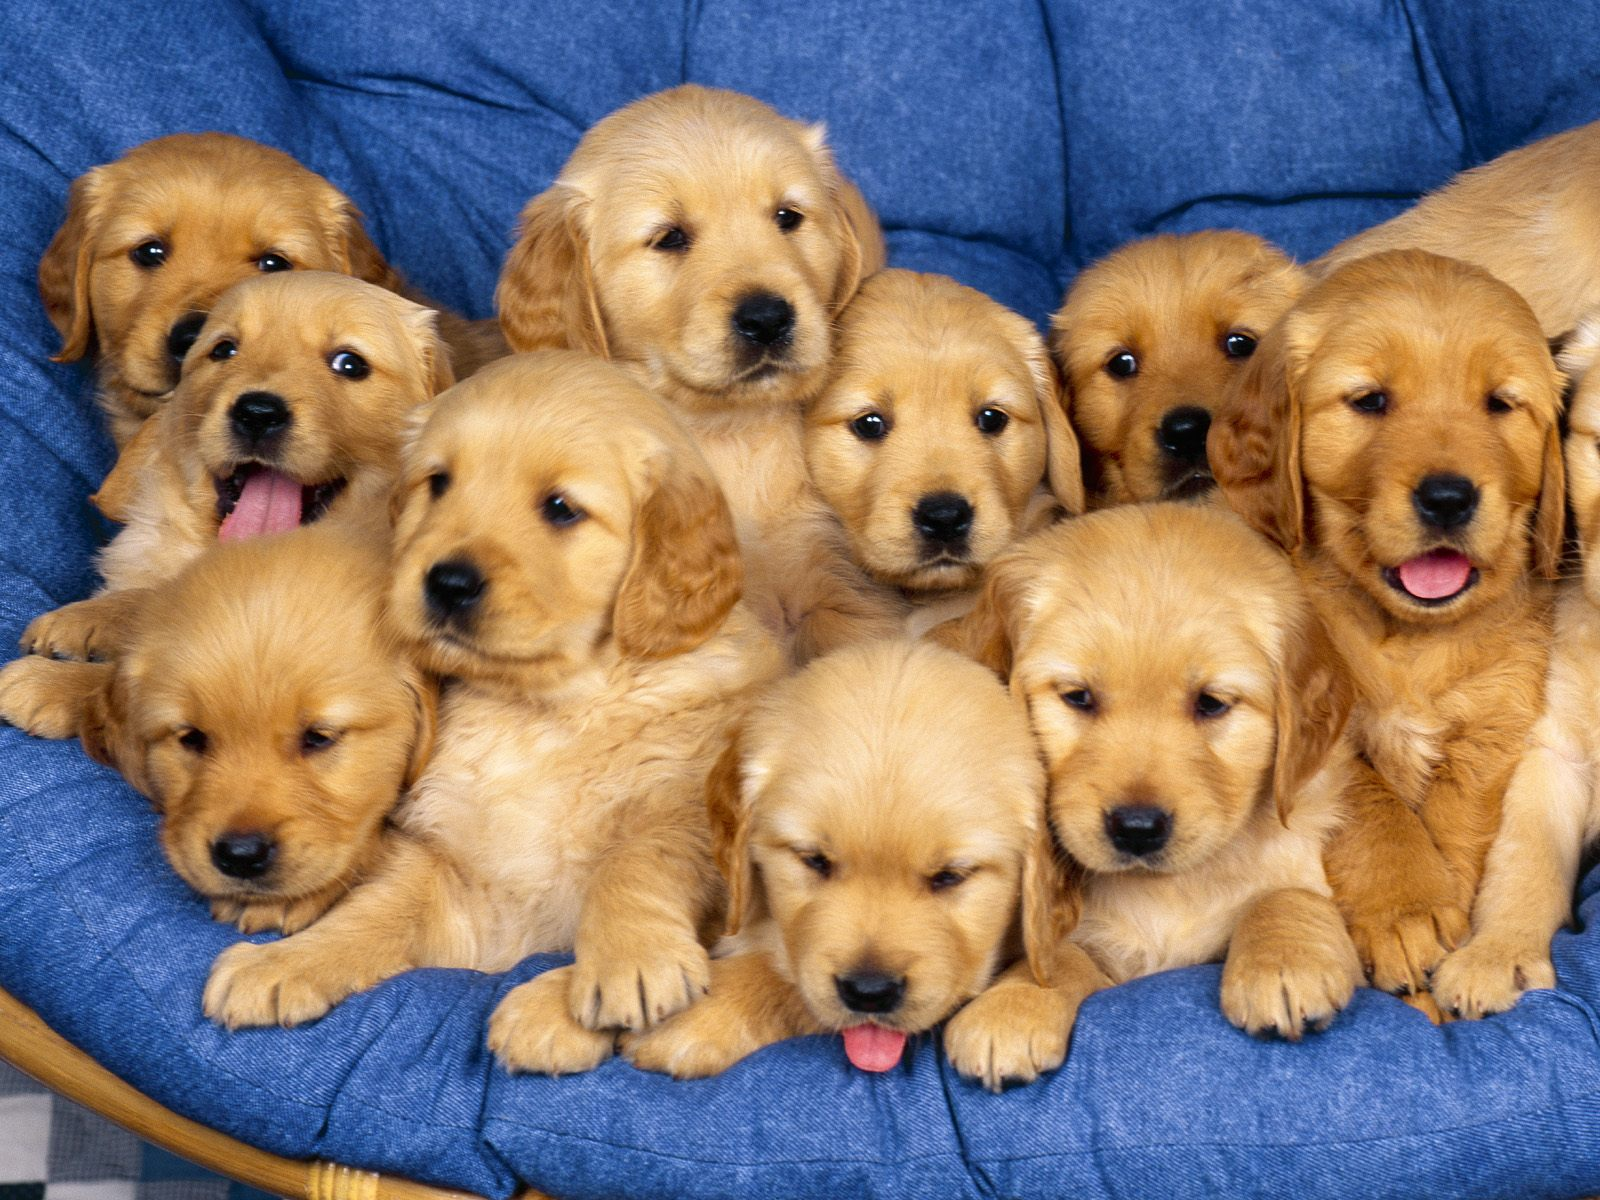 Cute Puppies Wallpaper - Cute Puppies Wallpaper